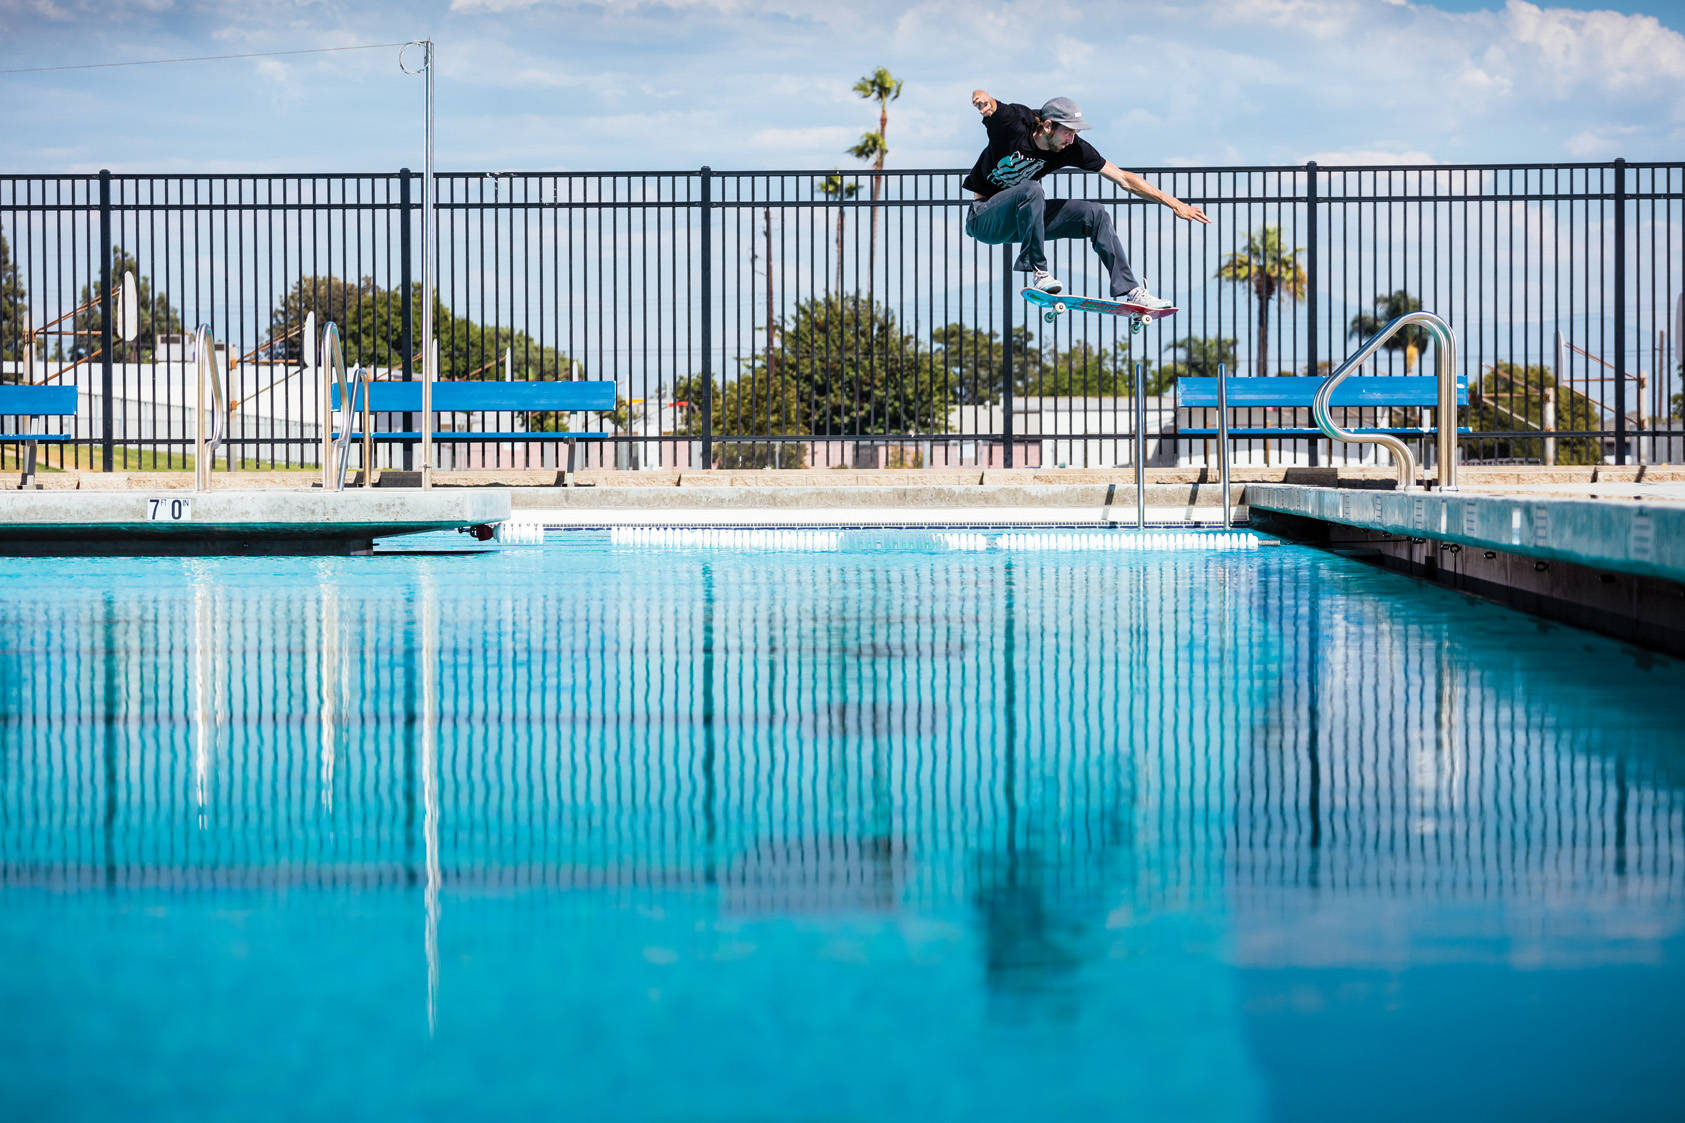 THE NEXT NEW WAVE -- Tom Rohrer - Berrics Magazine